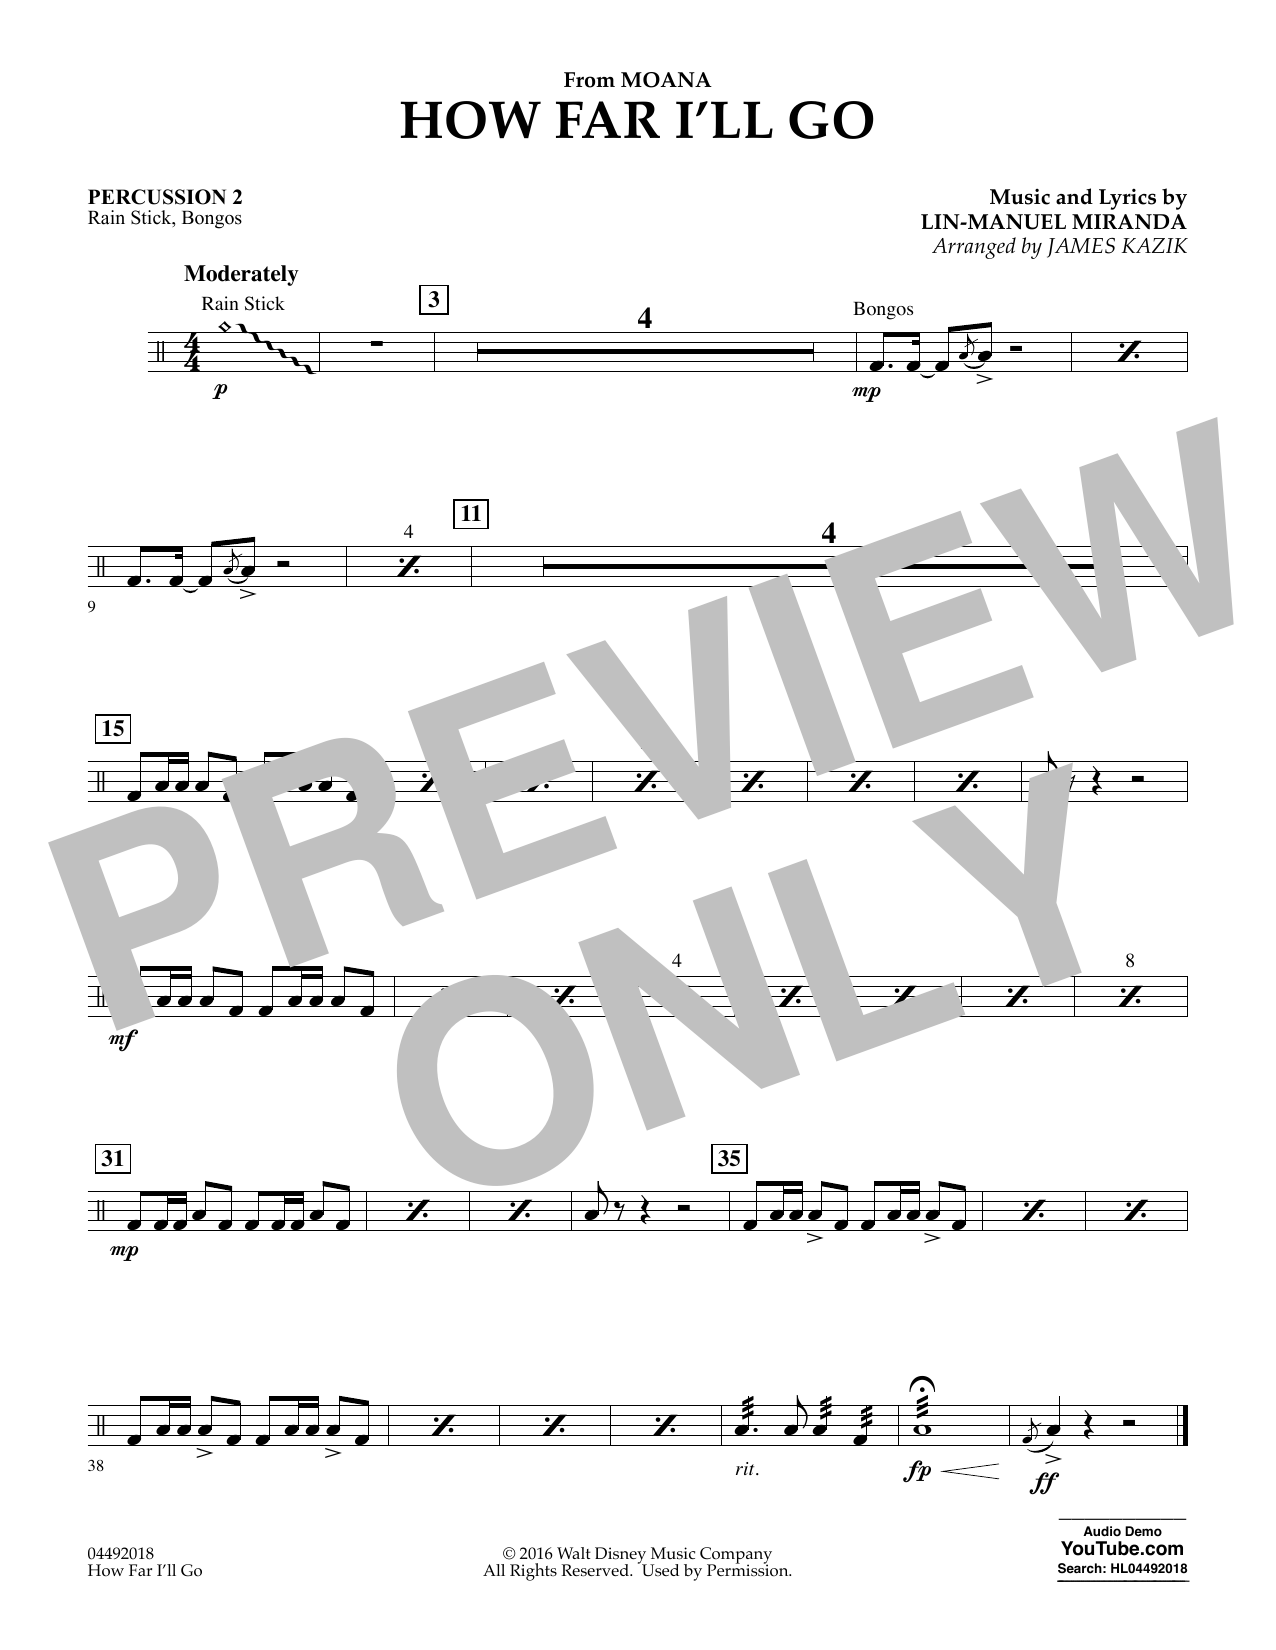 James Kazik How Far I'll Go (from Moana) - Percussion 2 sheet music notes and chords. Download Printable PDF.